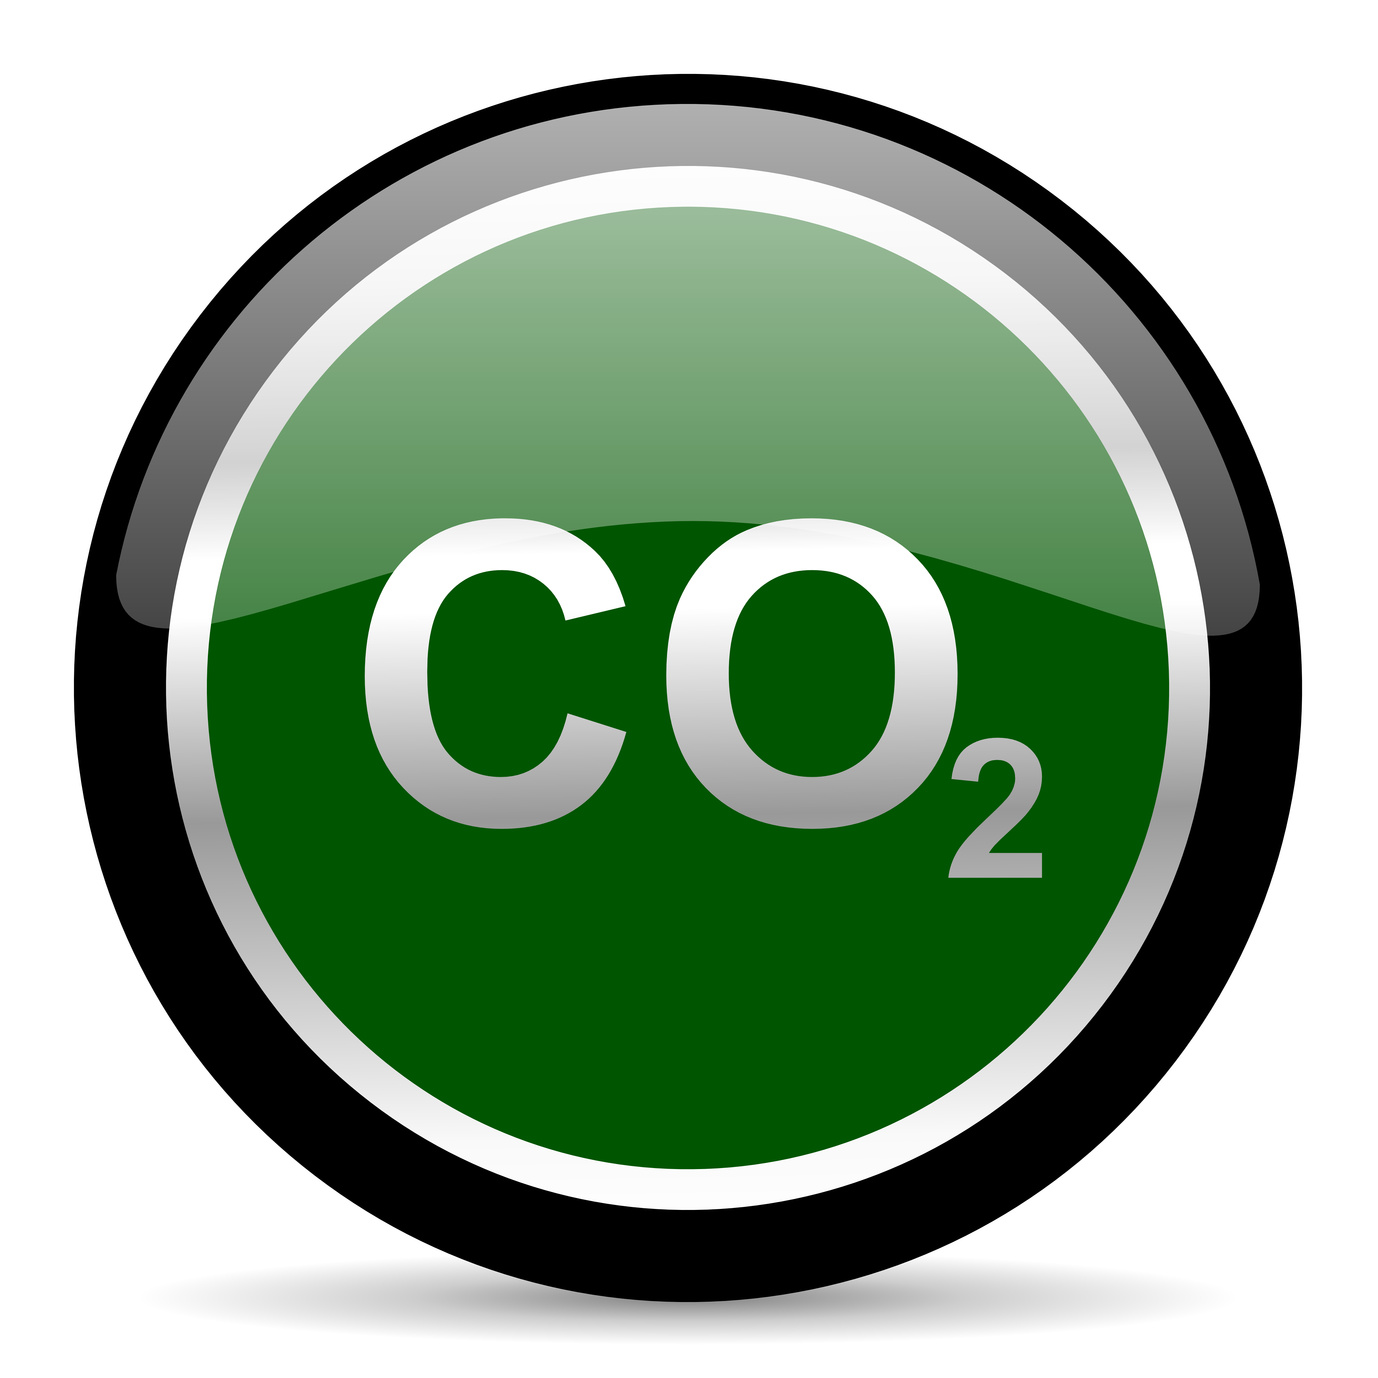 CO2 used in a way that actually protects the environment? That's awesome, and worthy of being immortalized with a plaque.